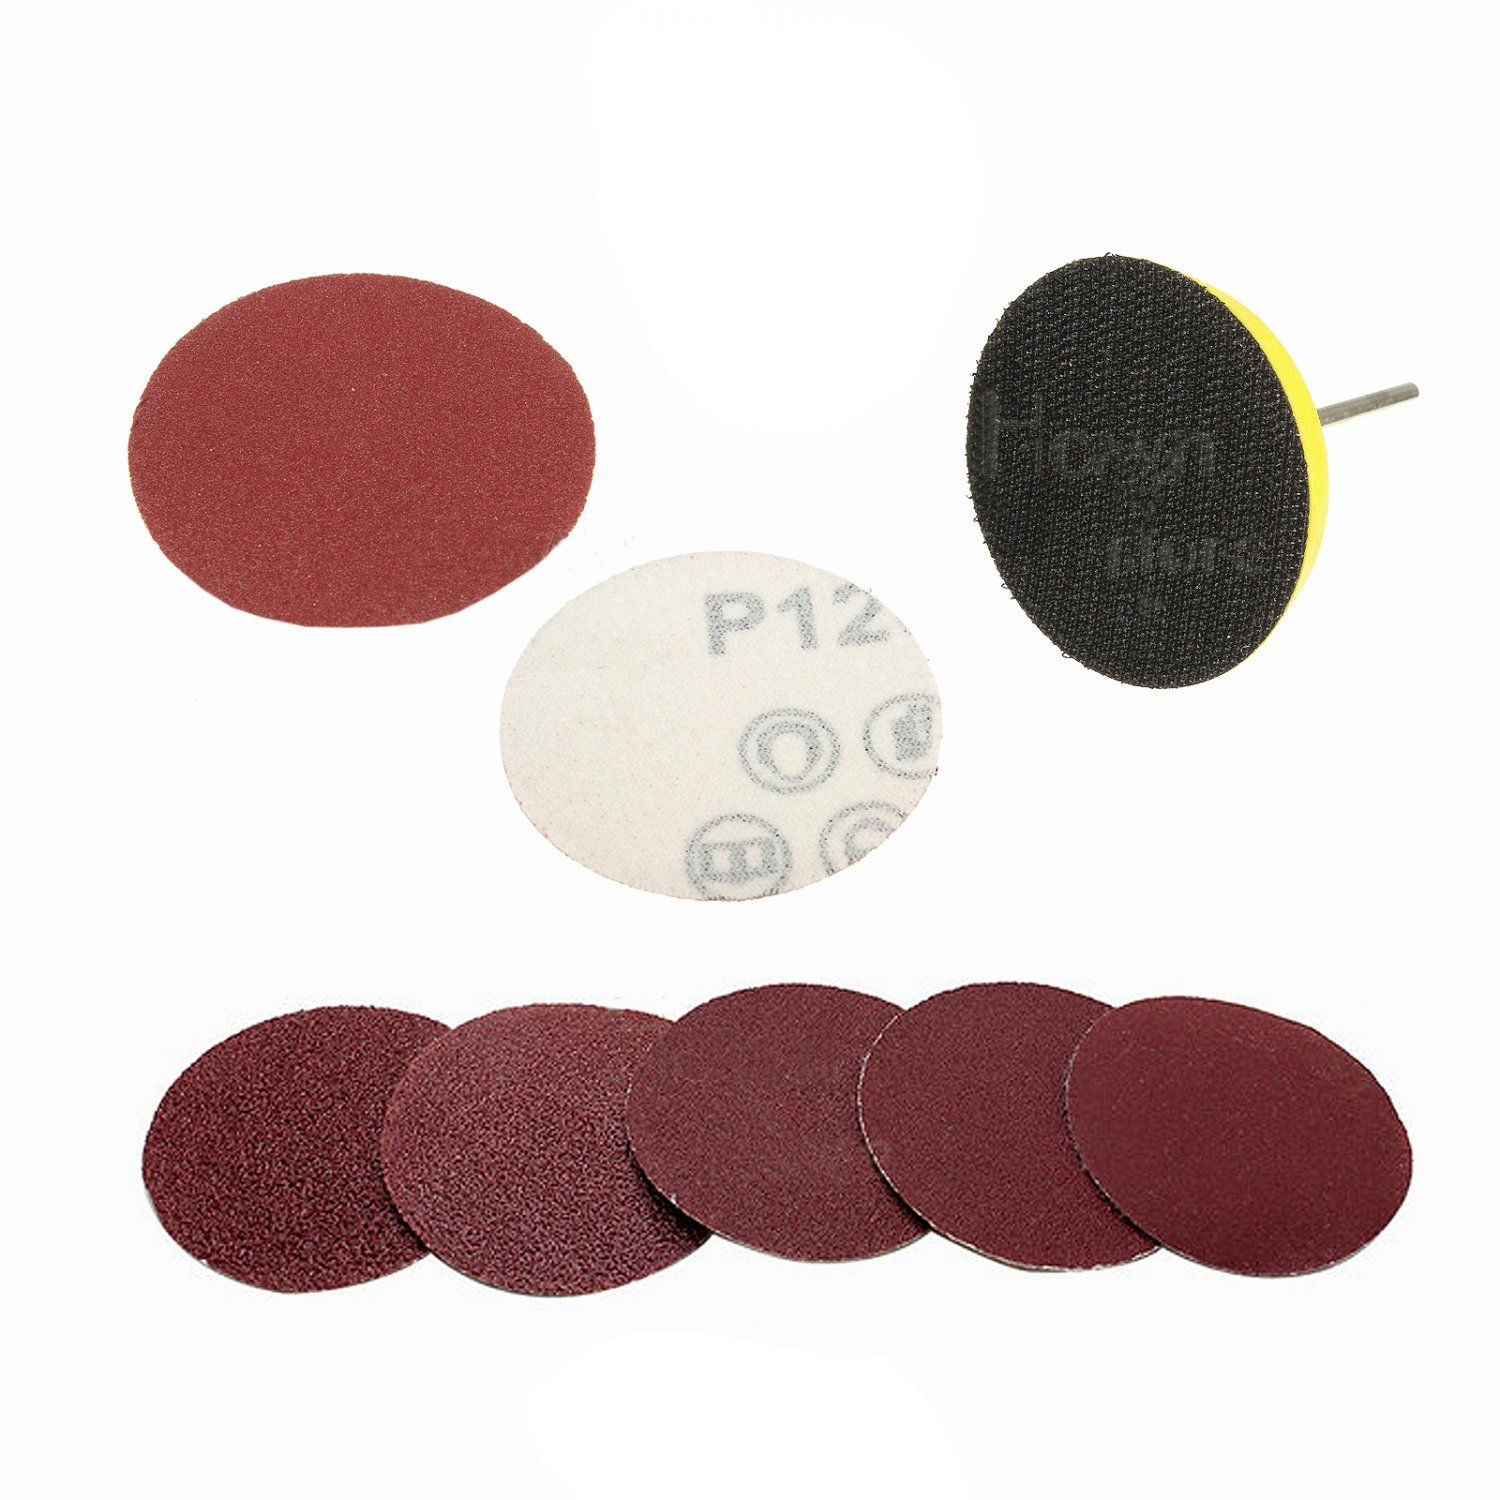 Hook And Loop Sanding Pad Sheet 2 Inch Disc Paper Sander Sandpaper In 2020 Sanding Sandpaper Hook